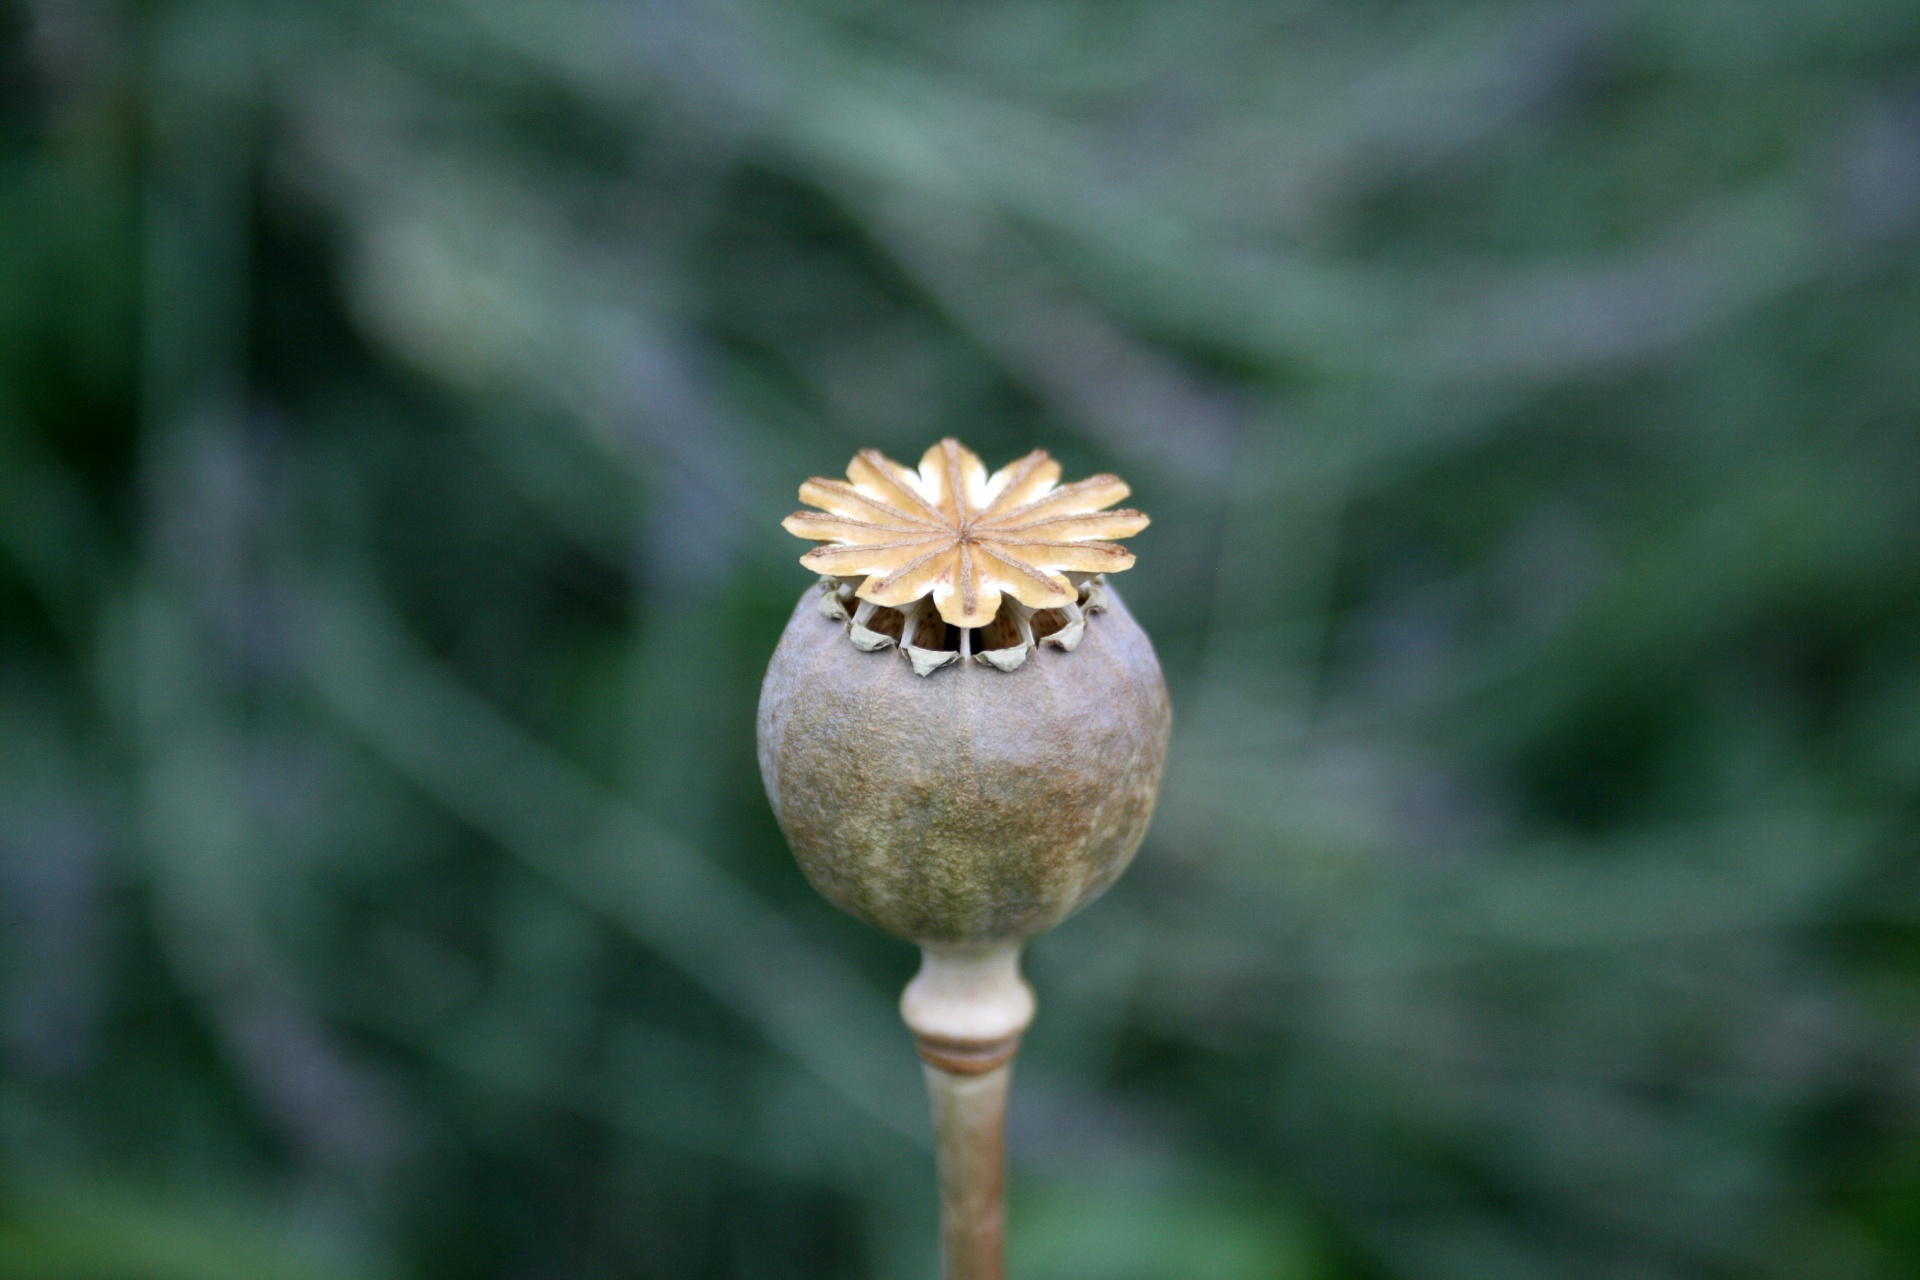 Poppy Seed Pod Seed Dry Chamber Housing Seeds Free Image From